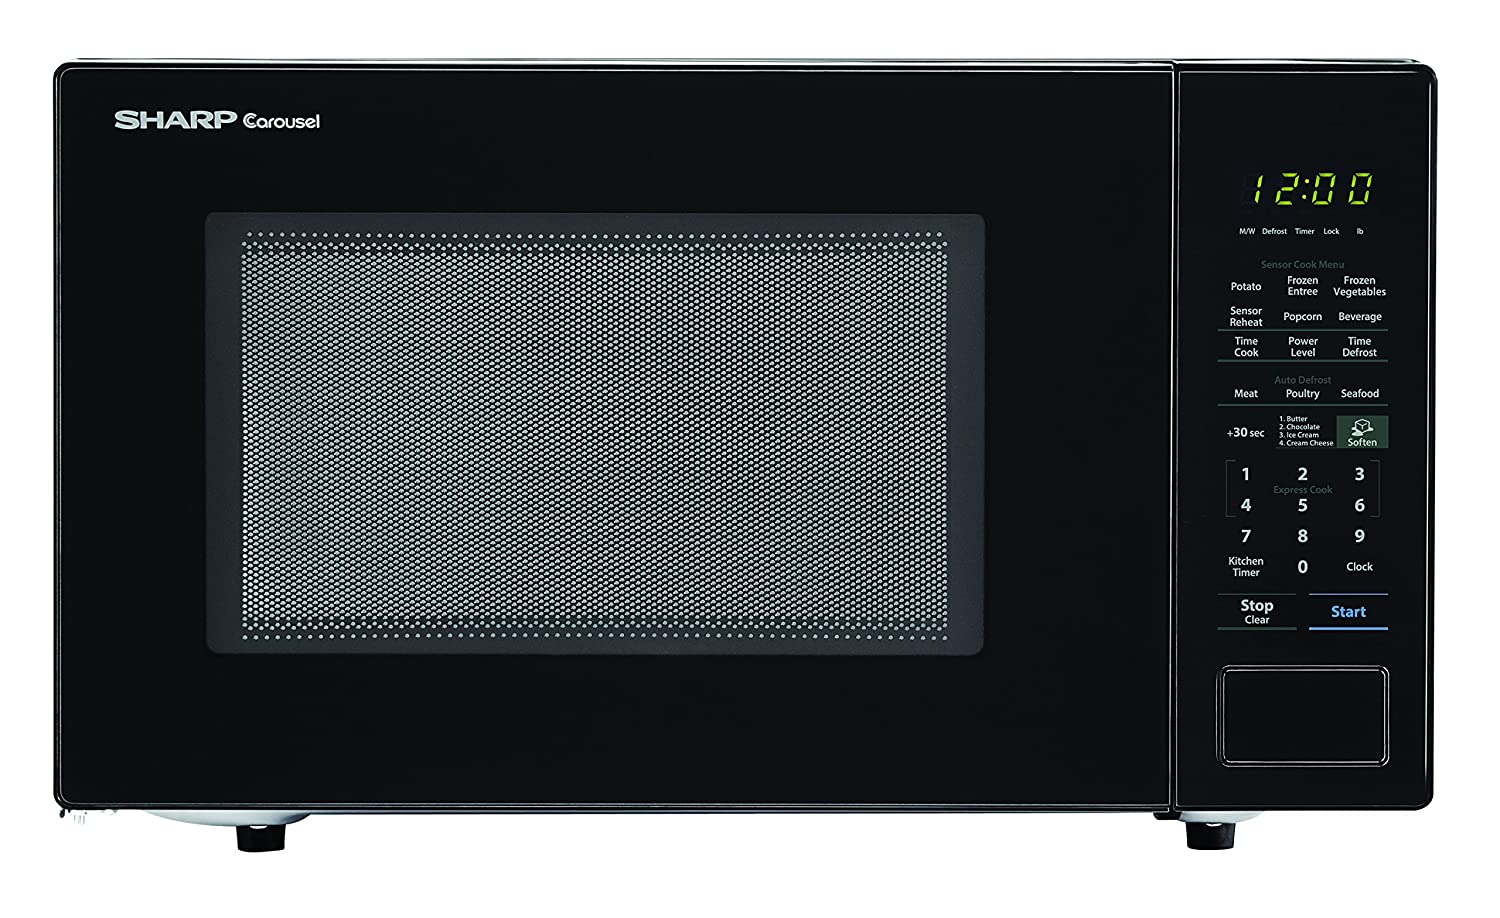 SHARP ZSMC1441CB Carousel 1.4 Cu. Ft. 1000W Countertop Microwave Oven in Black (ISTA 6 Packaging), Cubic Foot, 1000 Watts